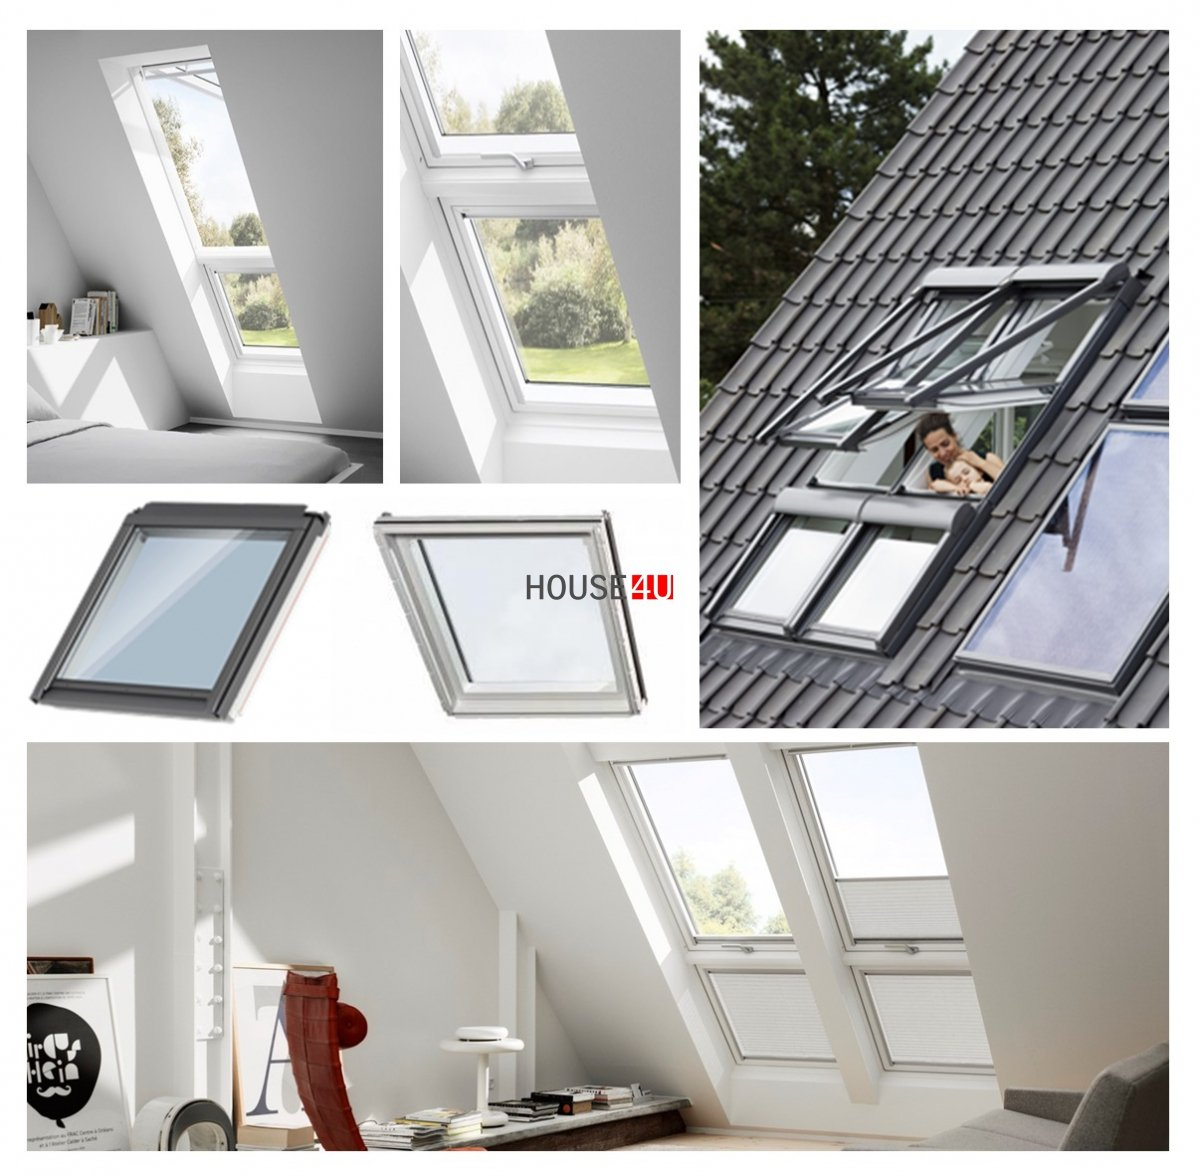 velux dachfenster giu 0066 kunststoff zusatzelement dachschr ge energie aluminium dachschr ge. Black Bedroom Furniture Sets. Home Design Ideas